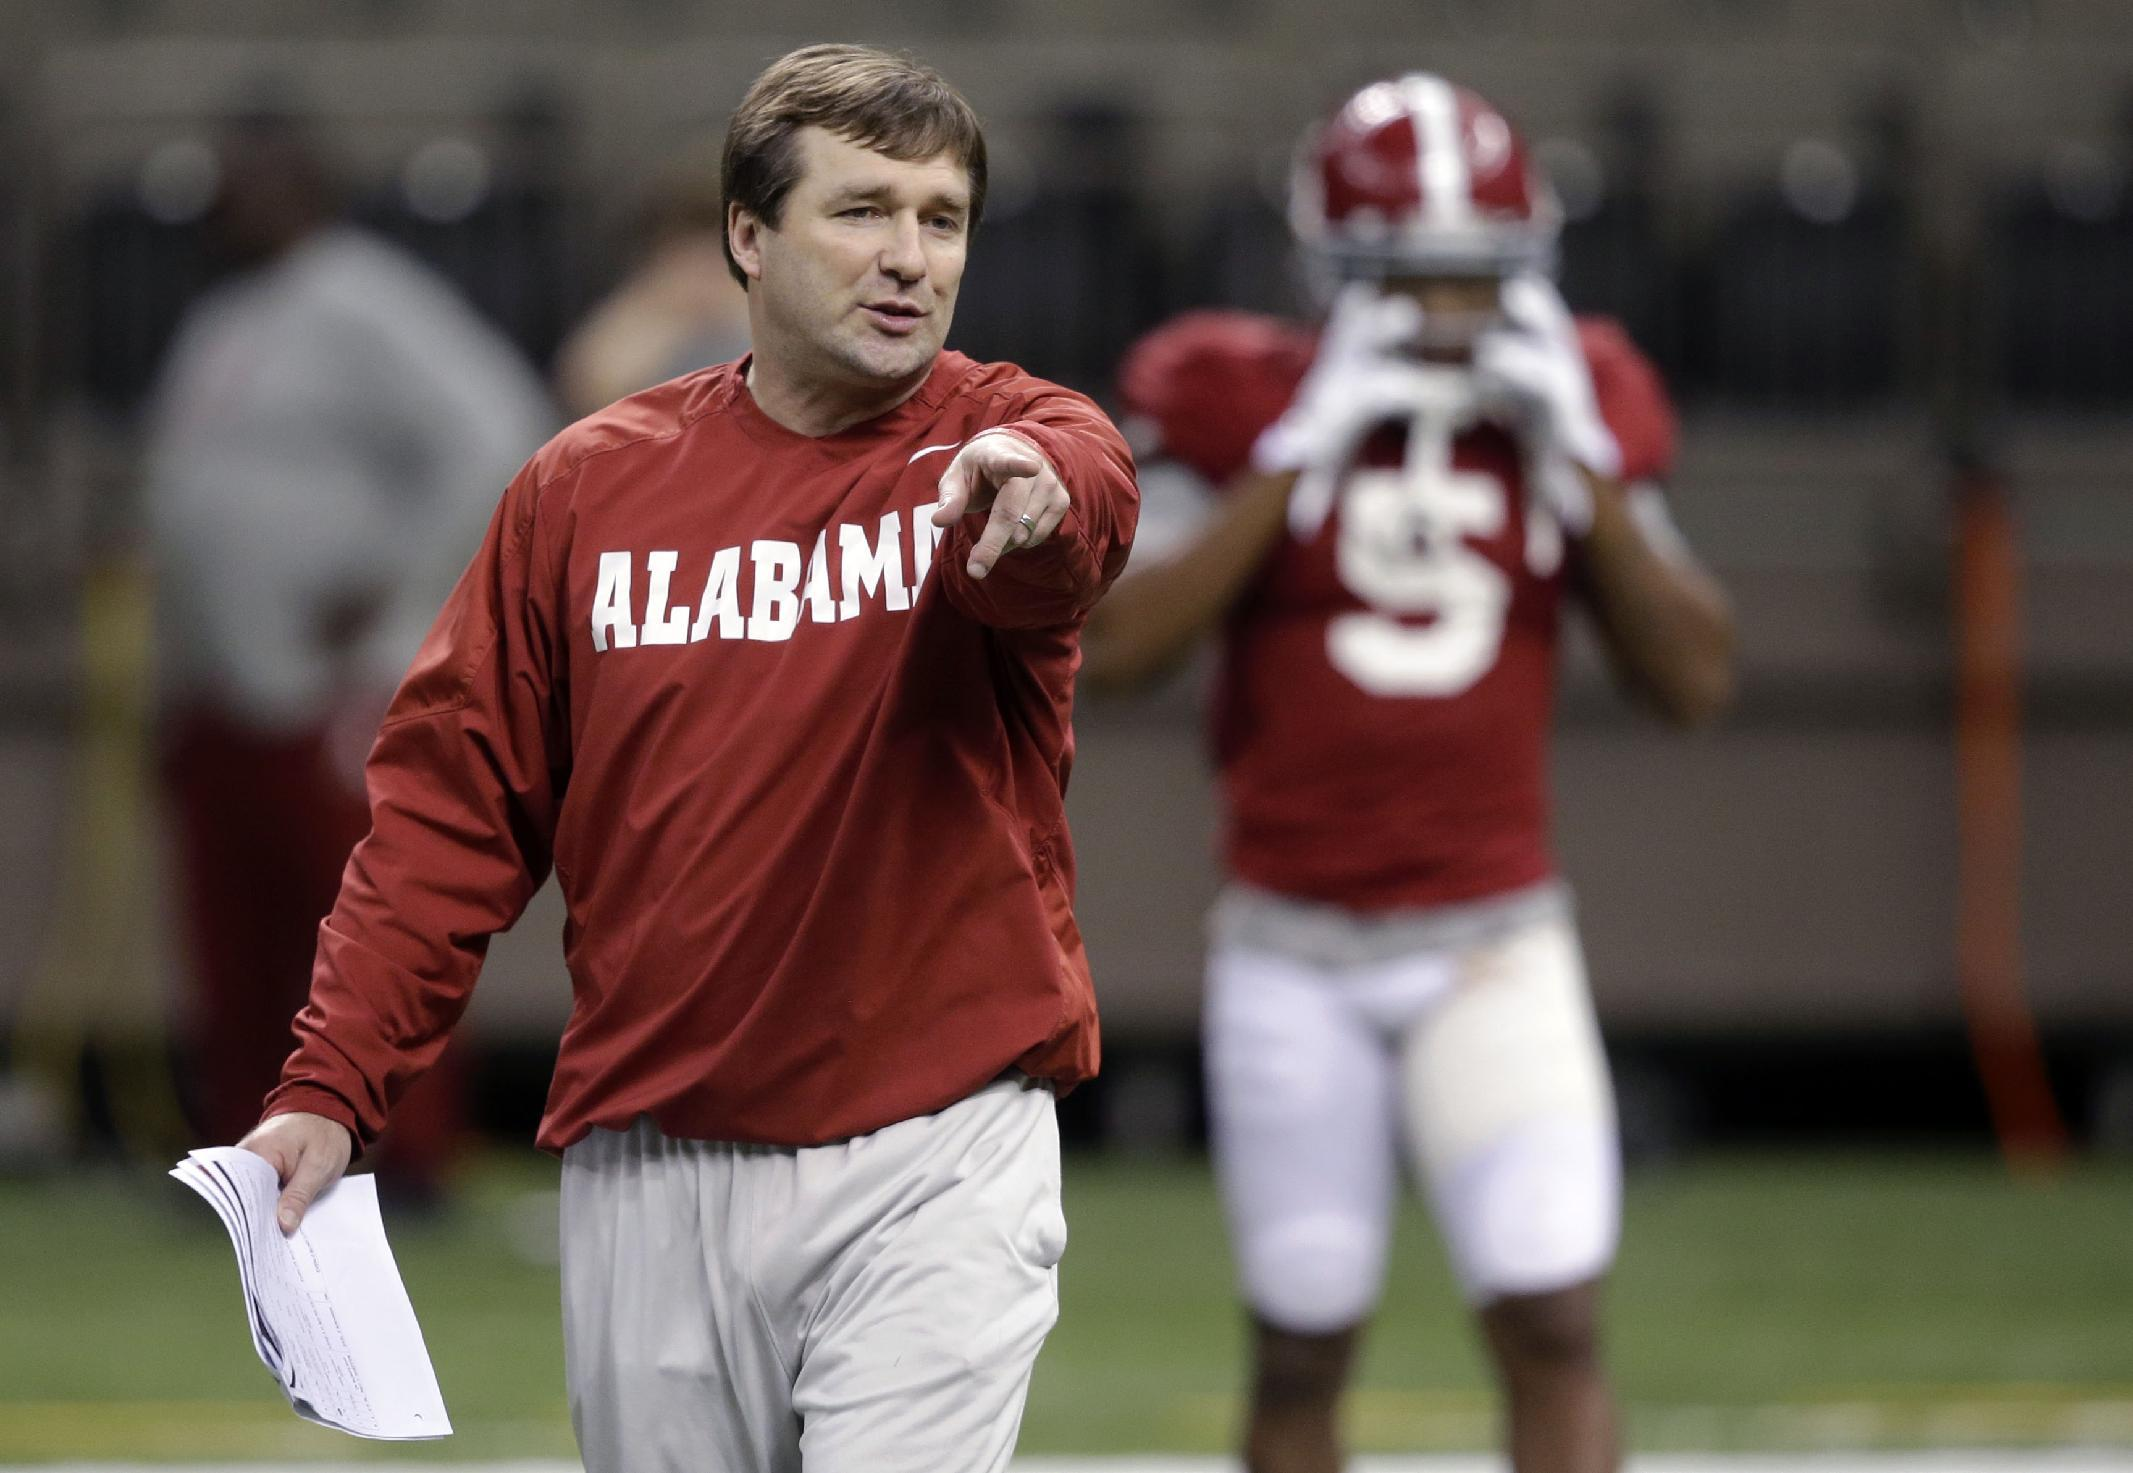 Report: Georgia to name Alabama DC Kirby Smart its next head coach